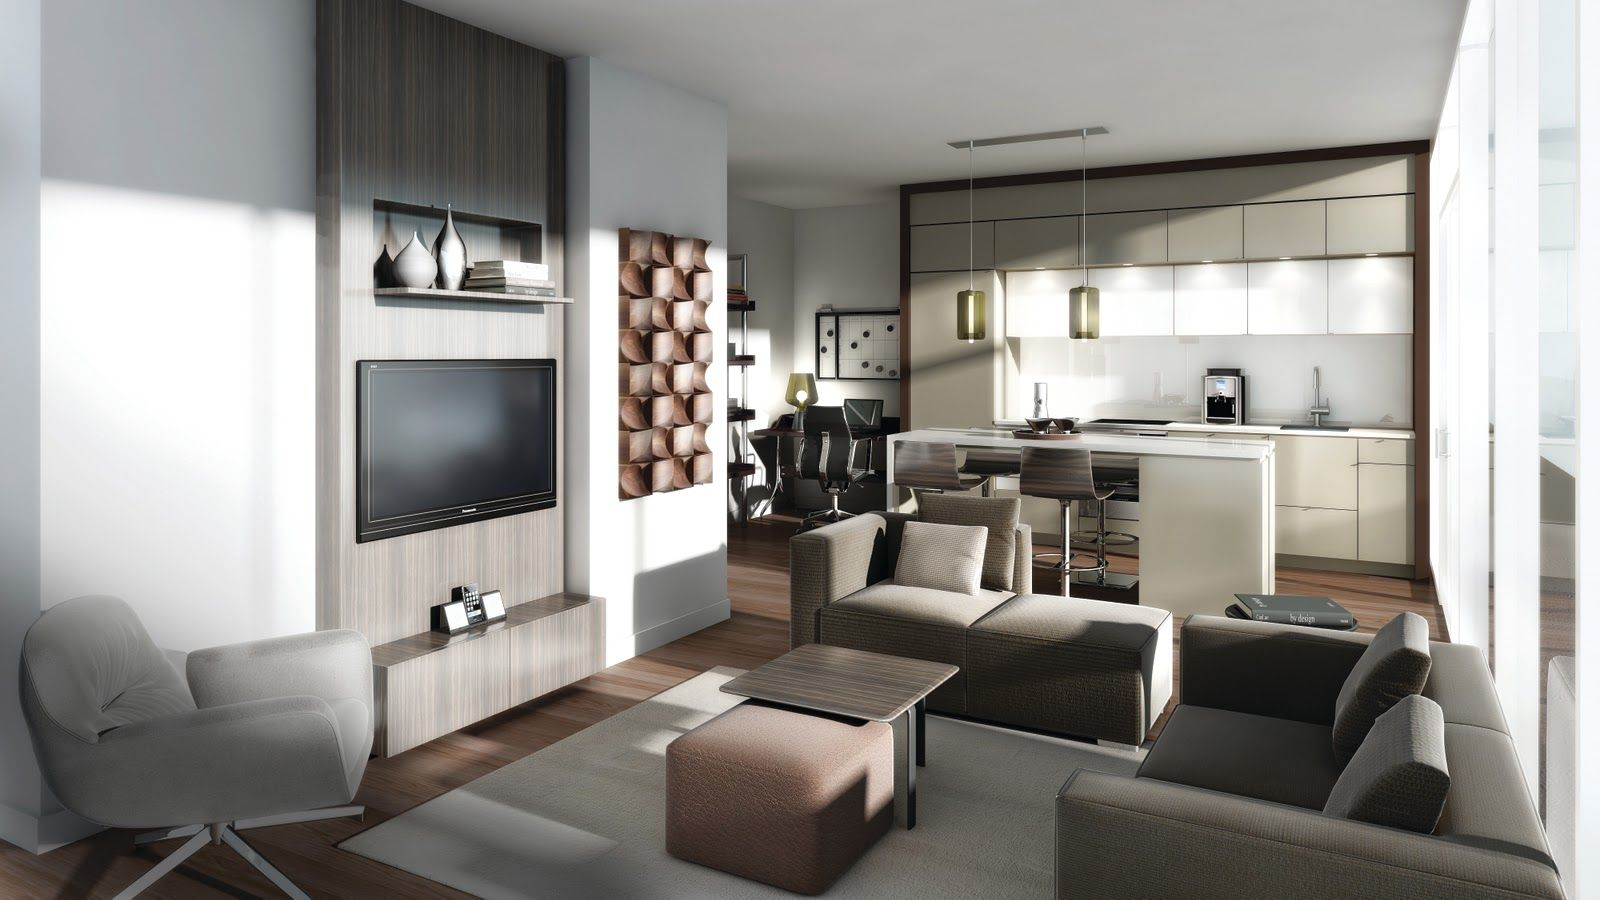 25 Best Modern Condo Design Ideas Condo Interior Condo Design